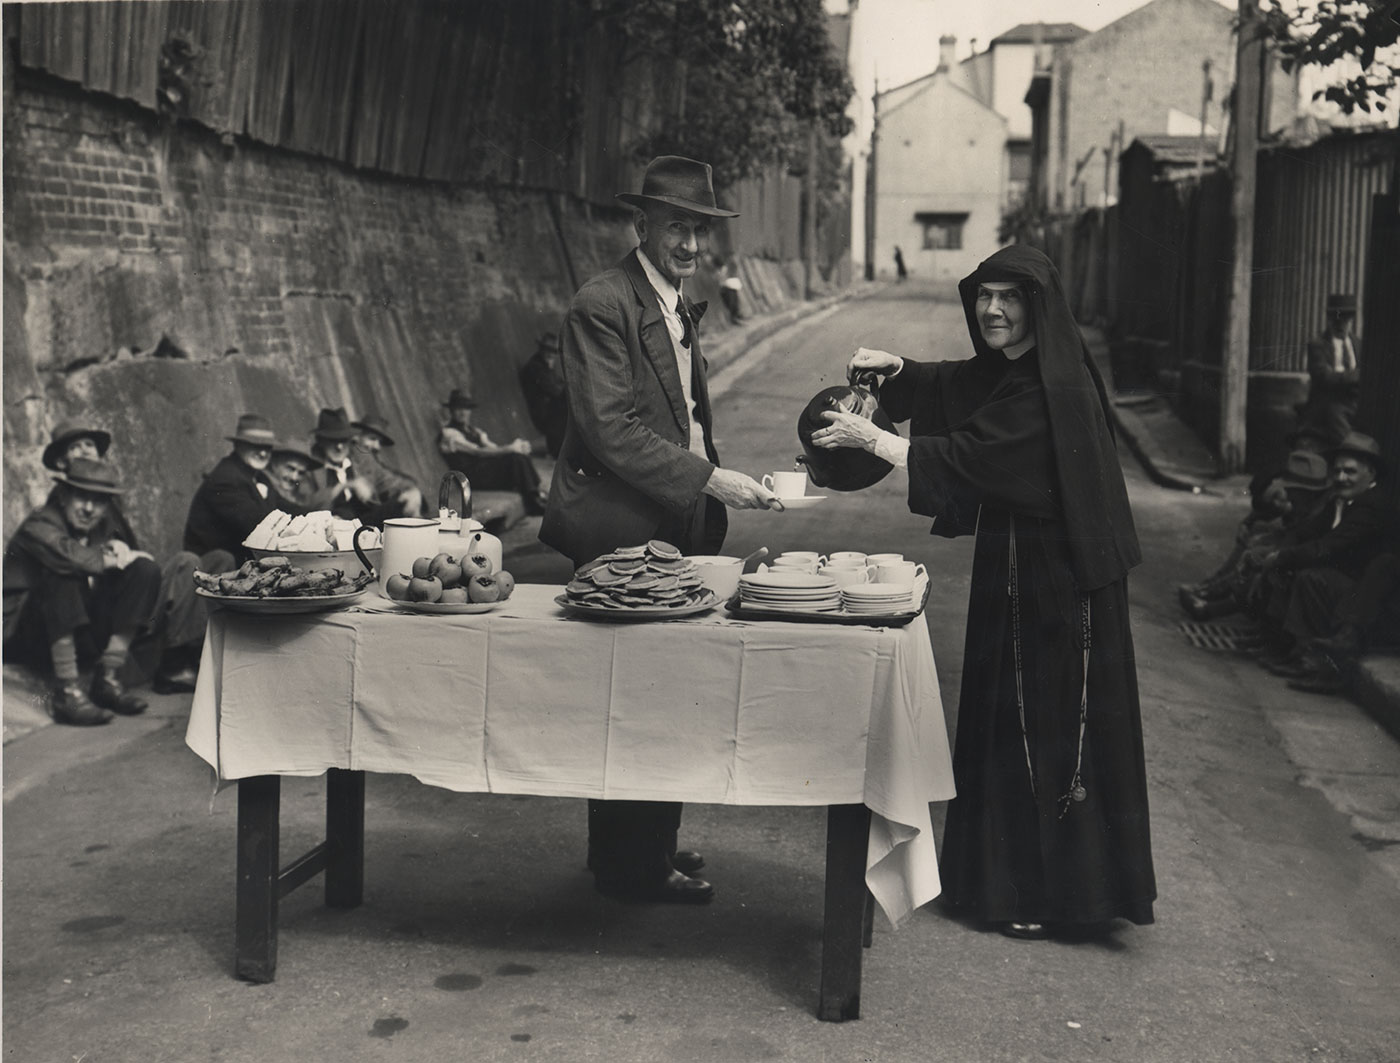 Black and white photo of a nun serving food and hot beverages to a group of men on the street. - click to view larger image